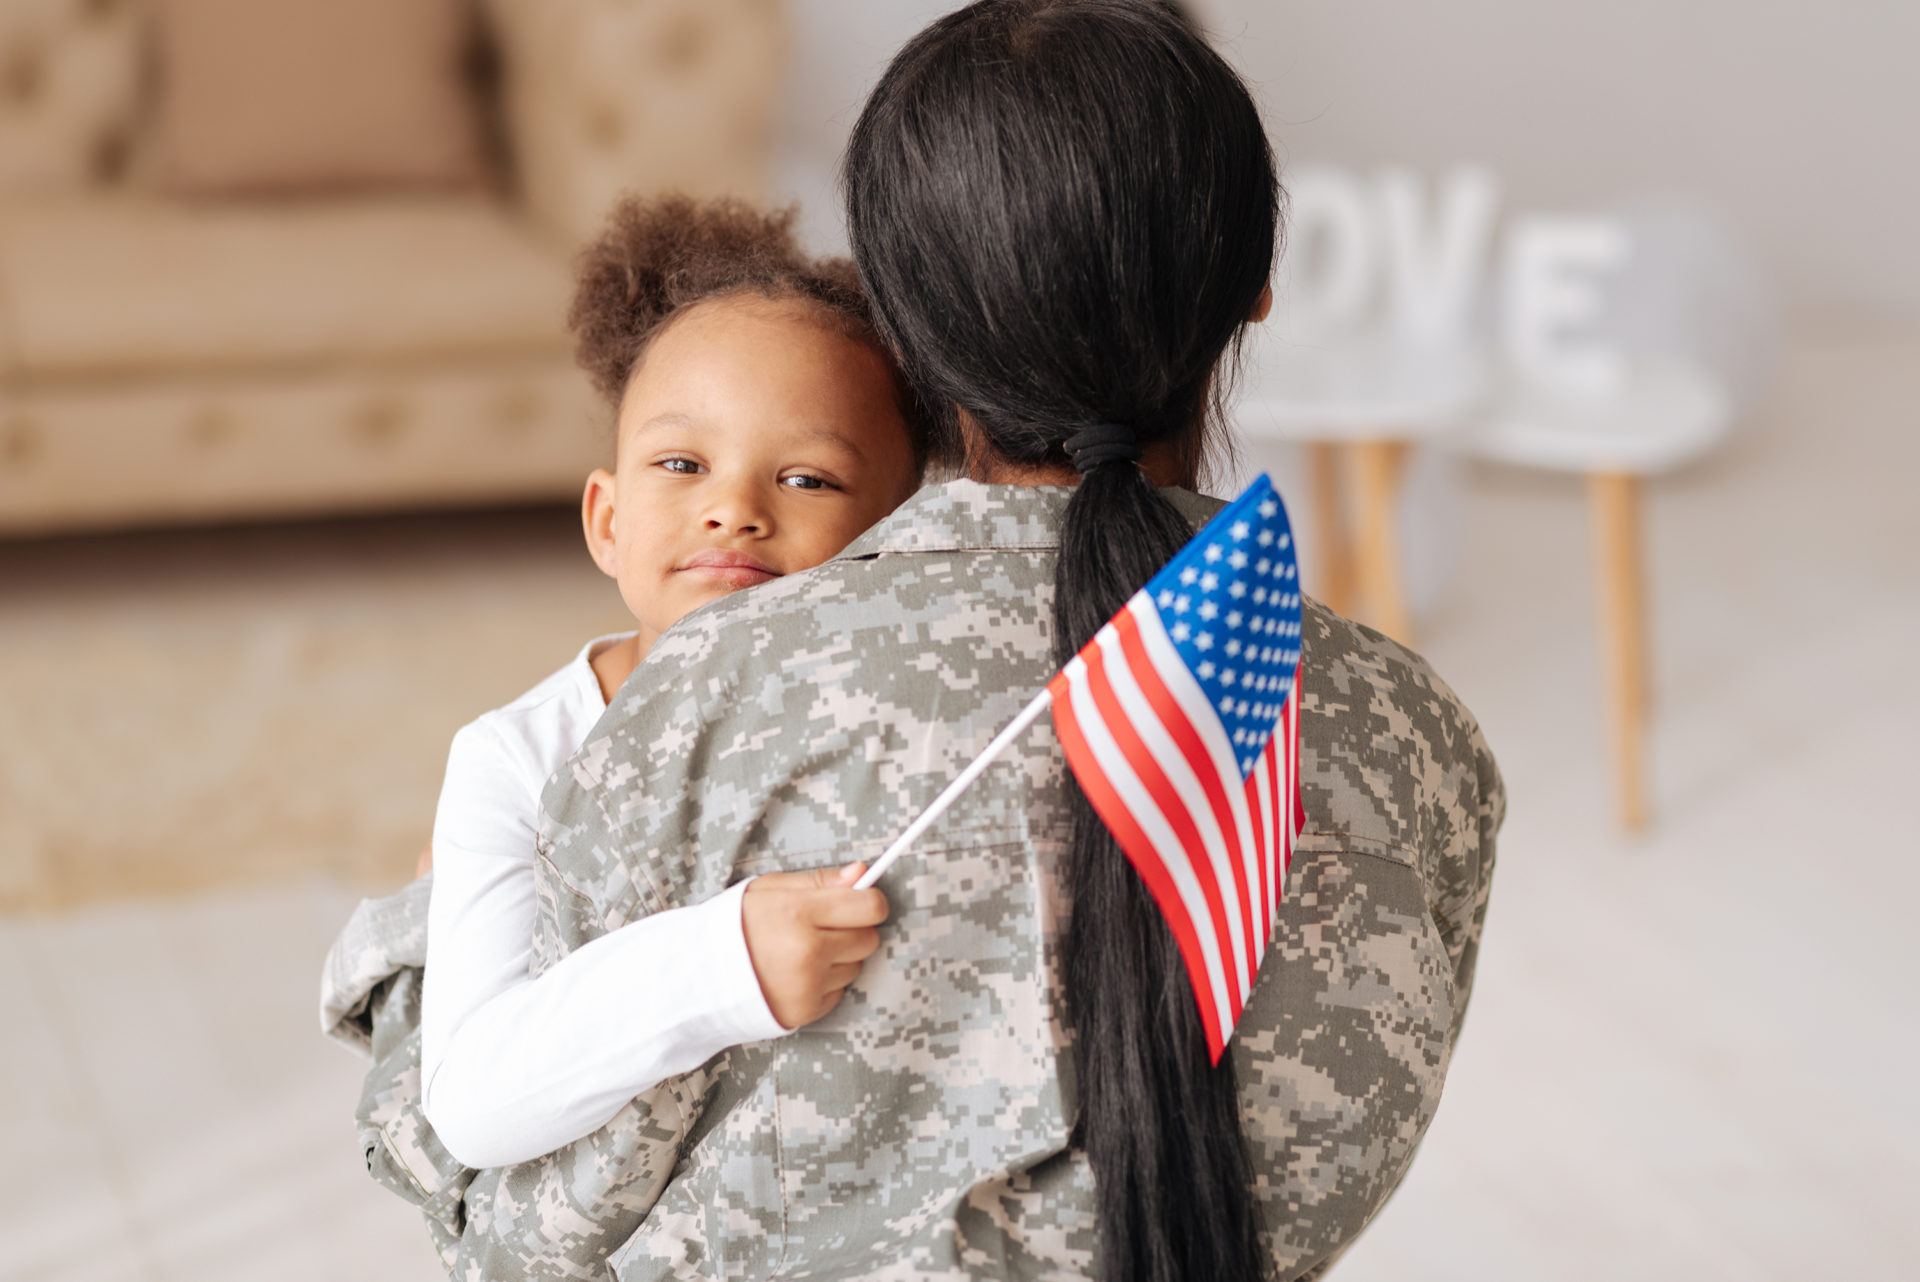 Child holding American flag hugs woman in military uniform